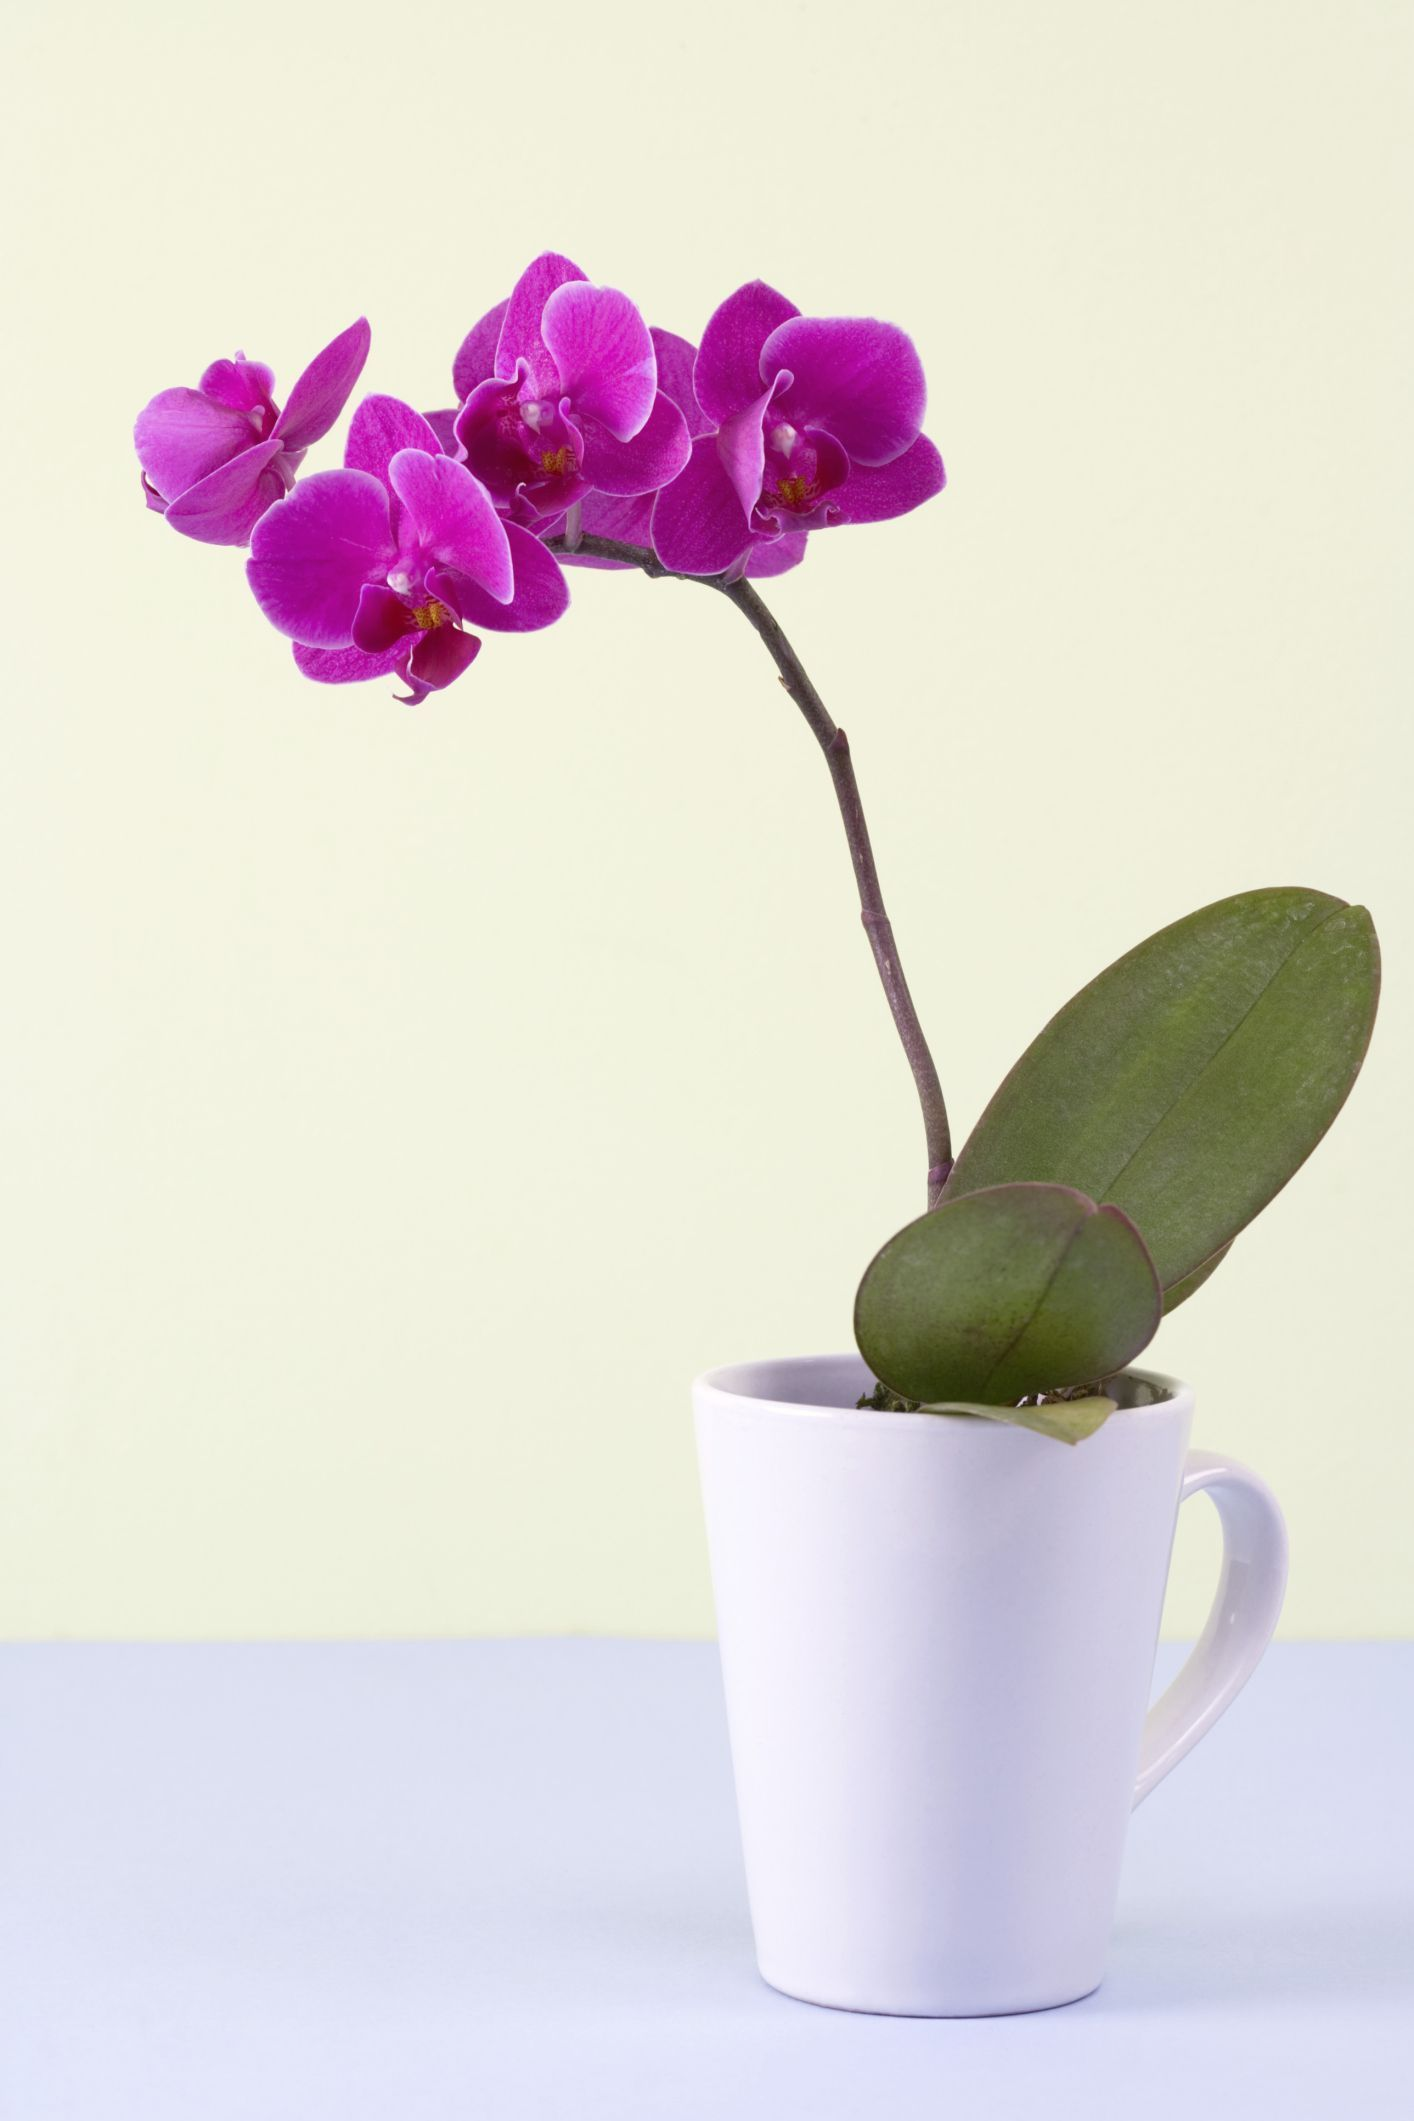 What you do with the spent flower stem after an orchid blooms